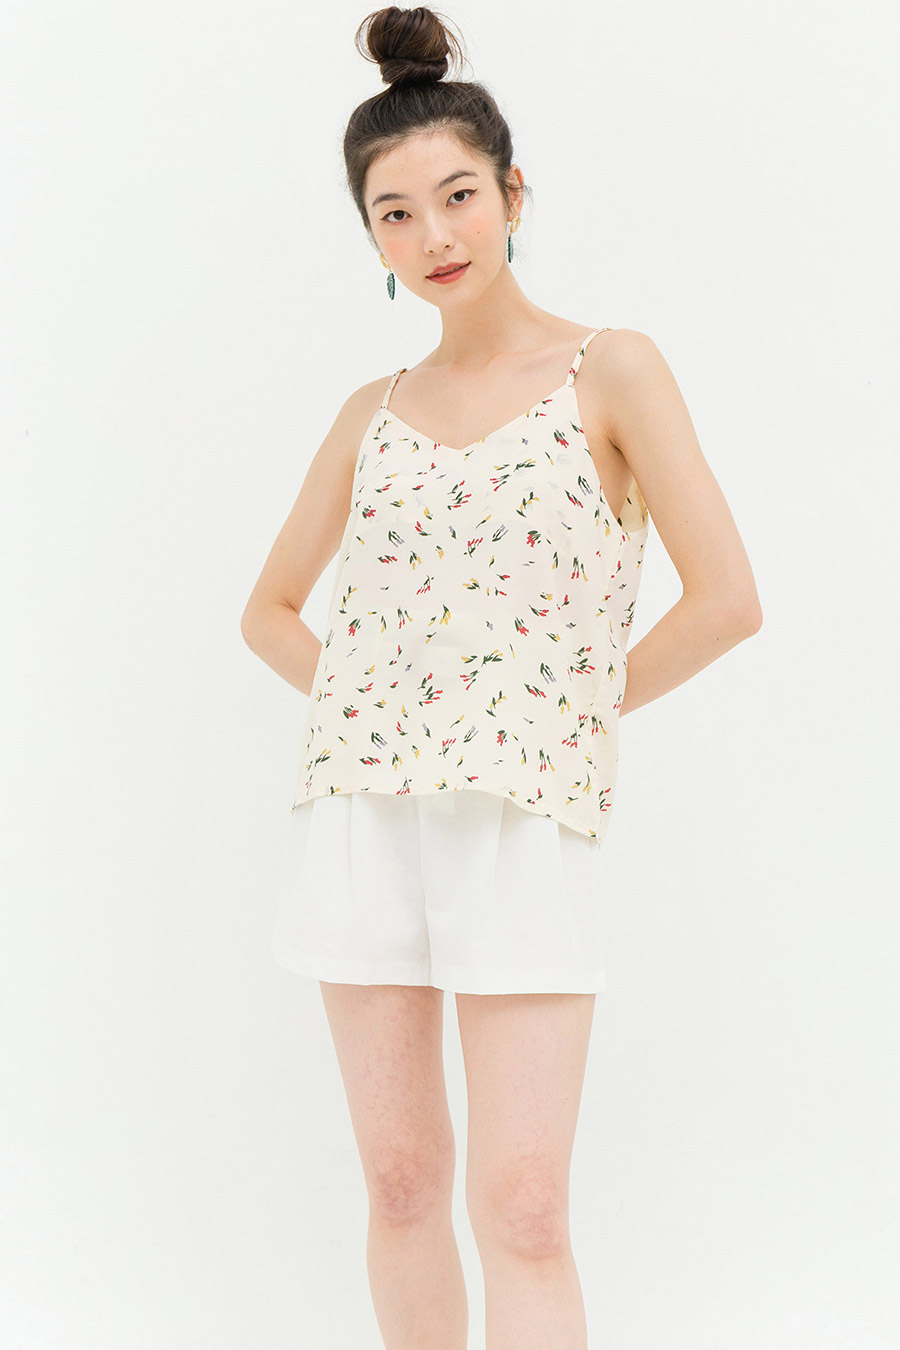 FOSTER TOP - IVORY FLEUR